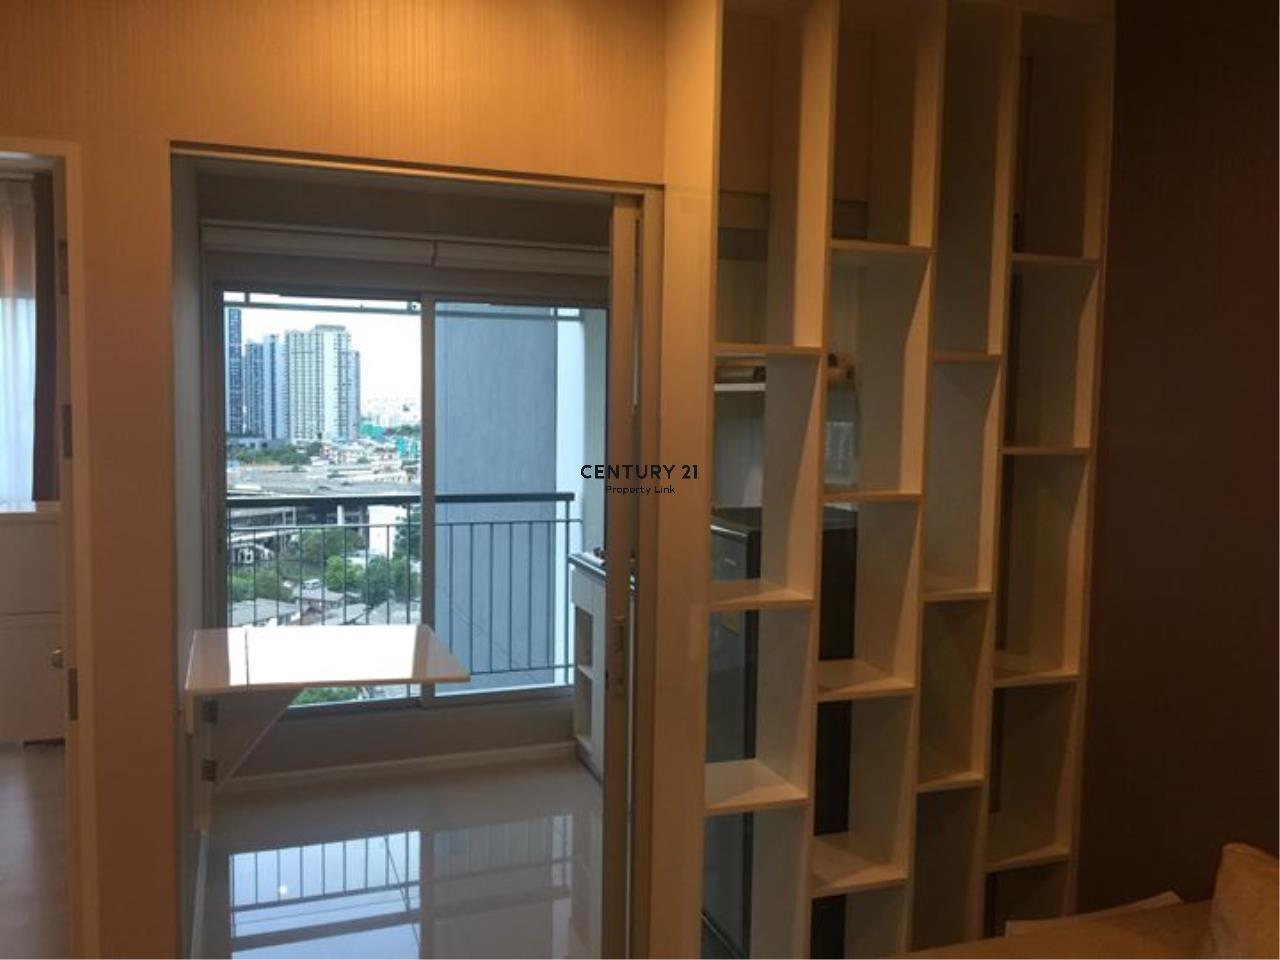 Century21 Property Link Agency's 39-CC-61592 Aspire Sukhumvit 48 Room For sale Condo Bangkok Phra Khanong BTS Sale 2.97 mb. 2